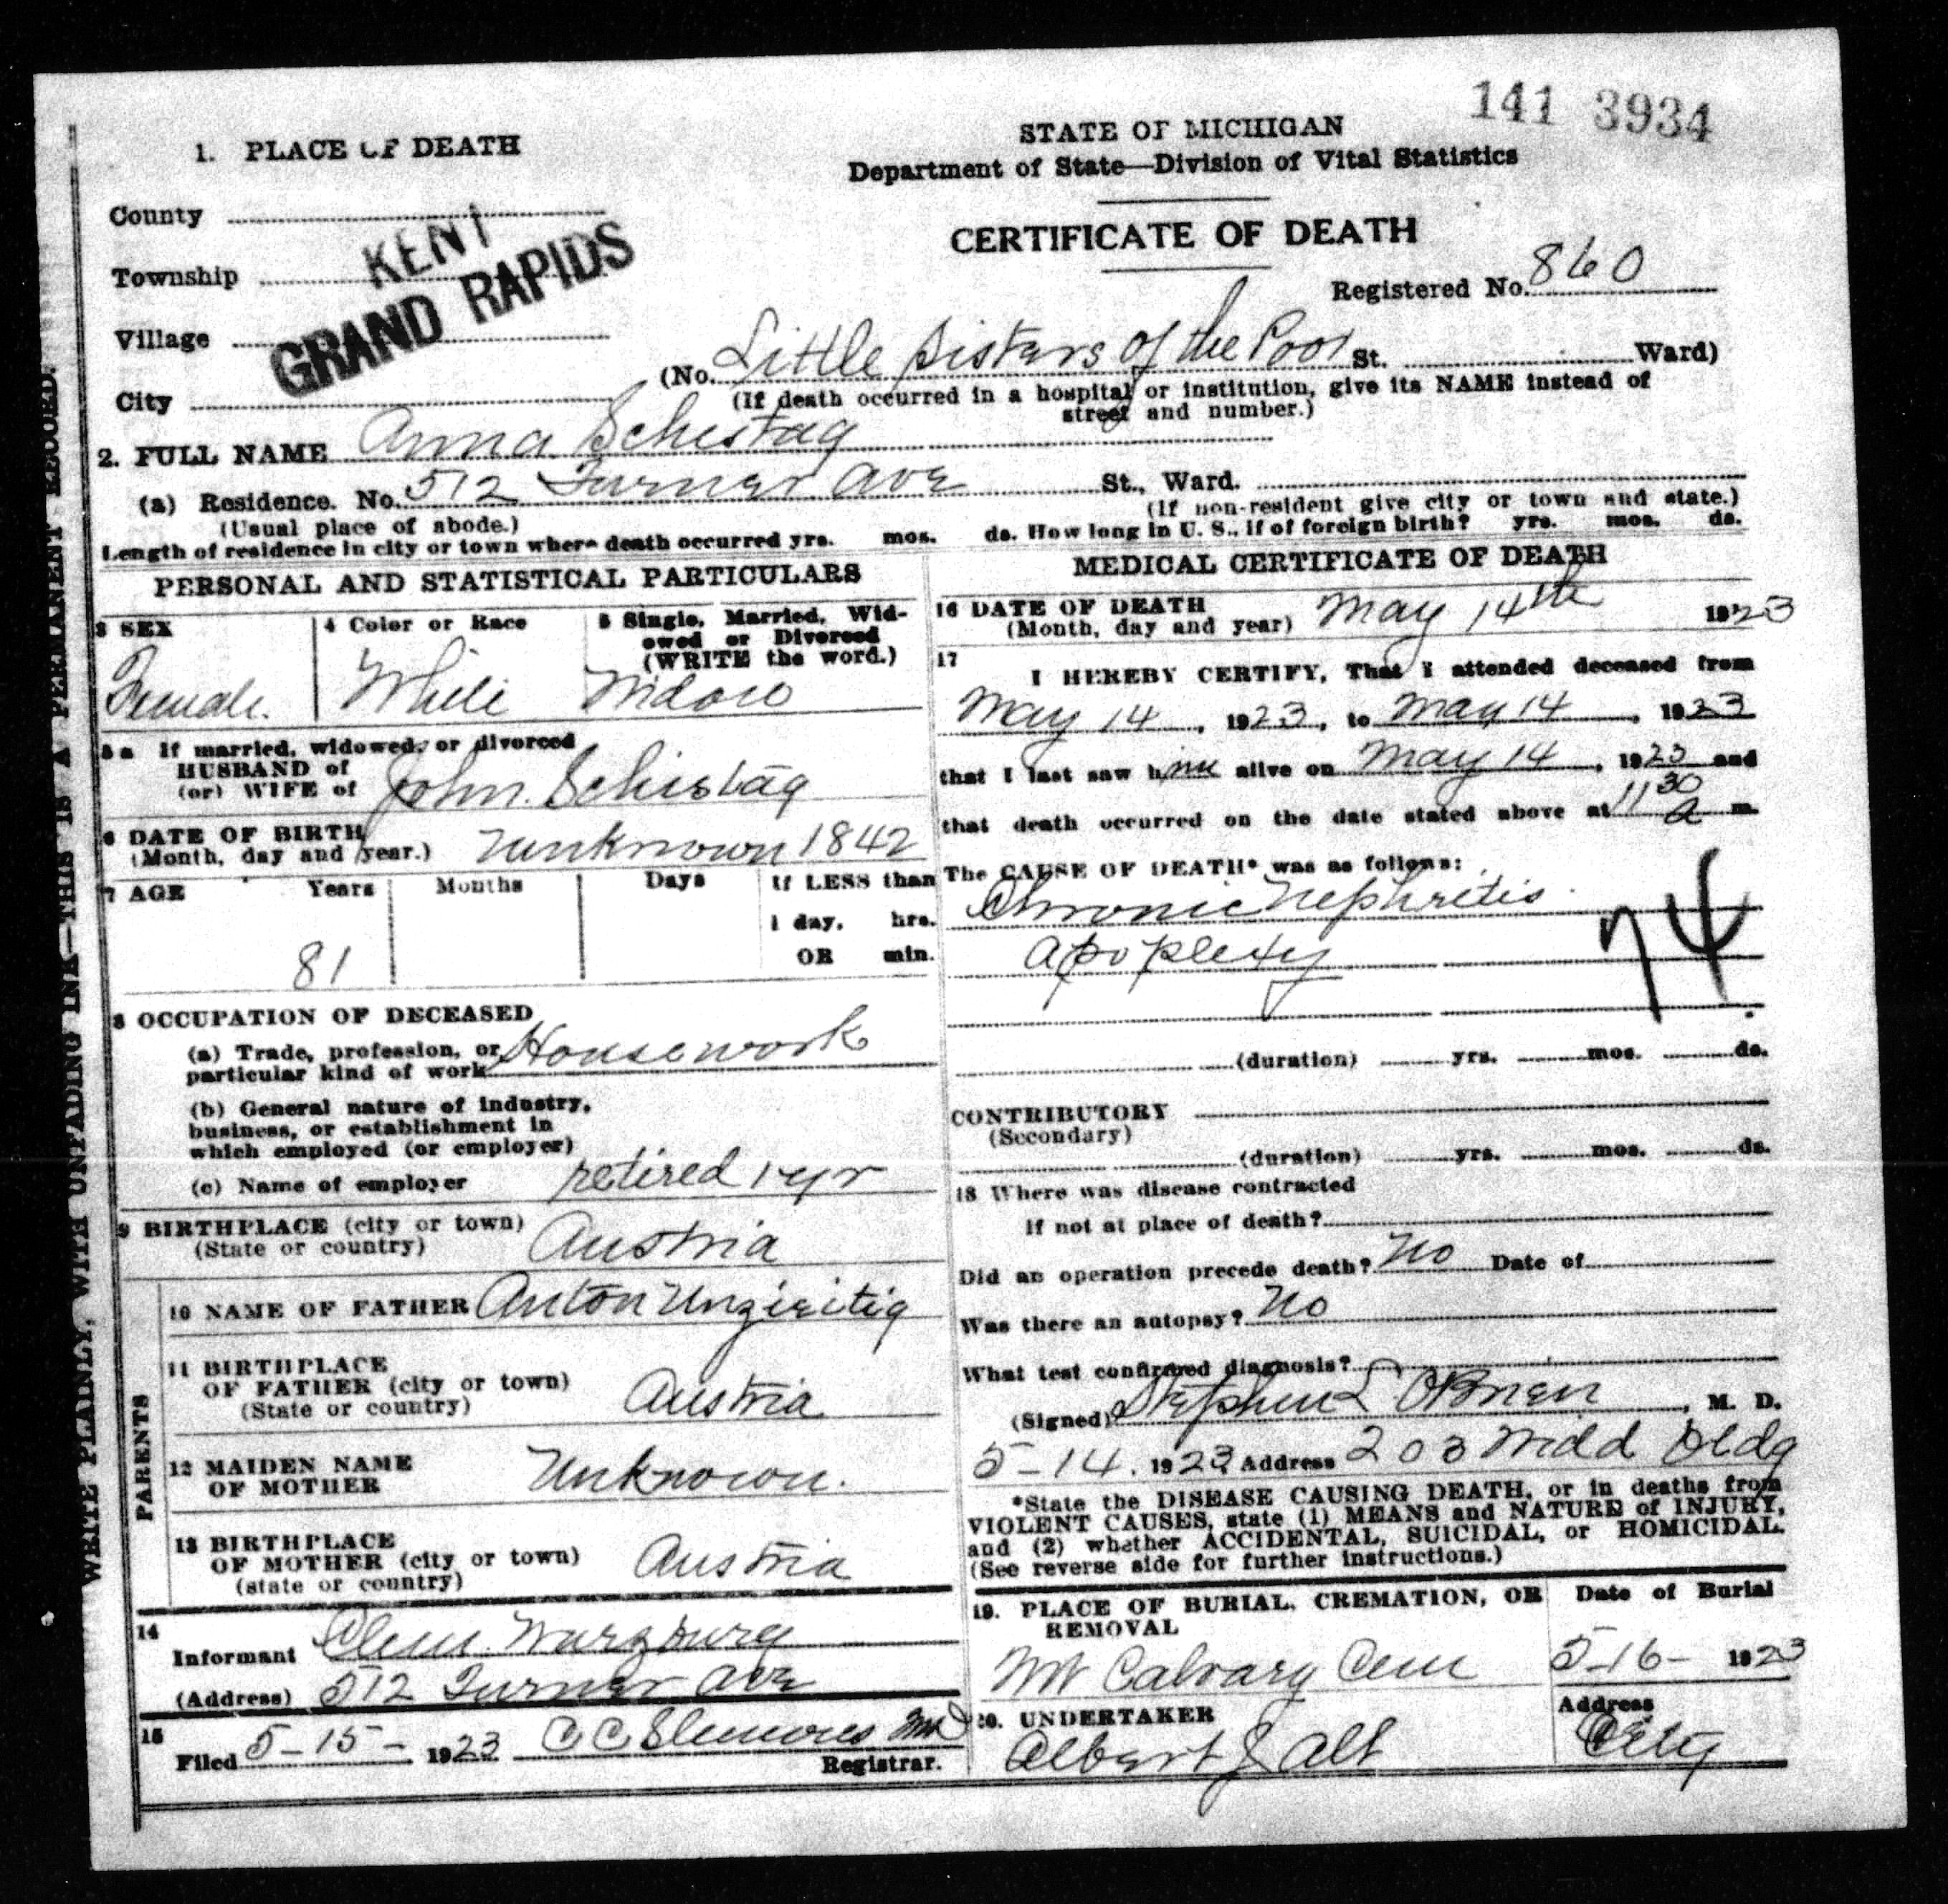 Anna schestag 1843 1923 find a grave memorial death certificate of anna schestag died 14 may 1923 at the little sisters of the poor grand rapids kent county michigan death certificate found at the xflitez Image collections